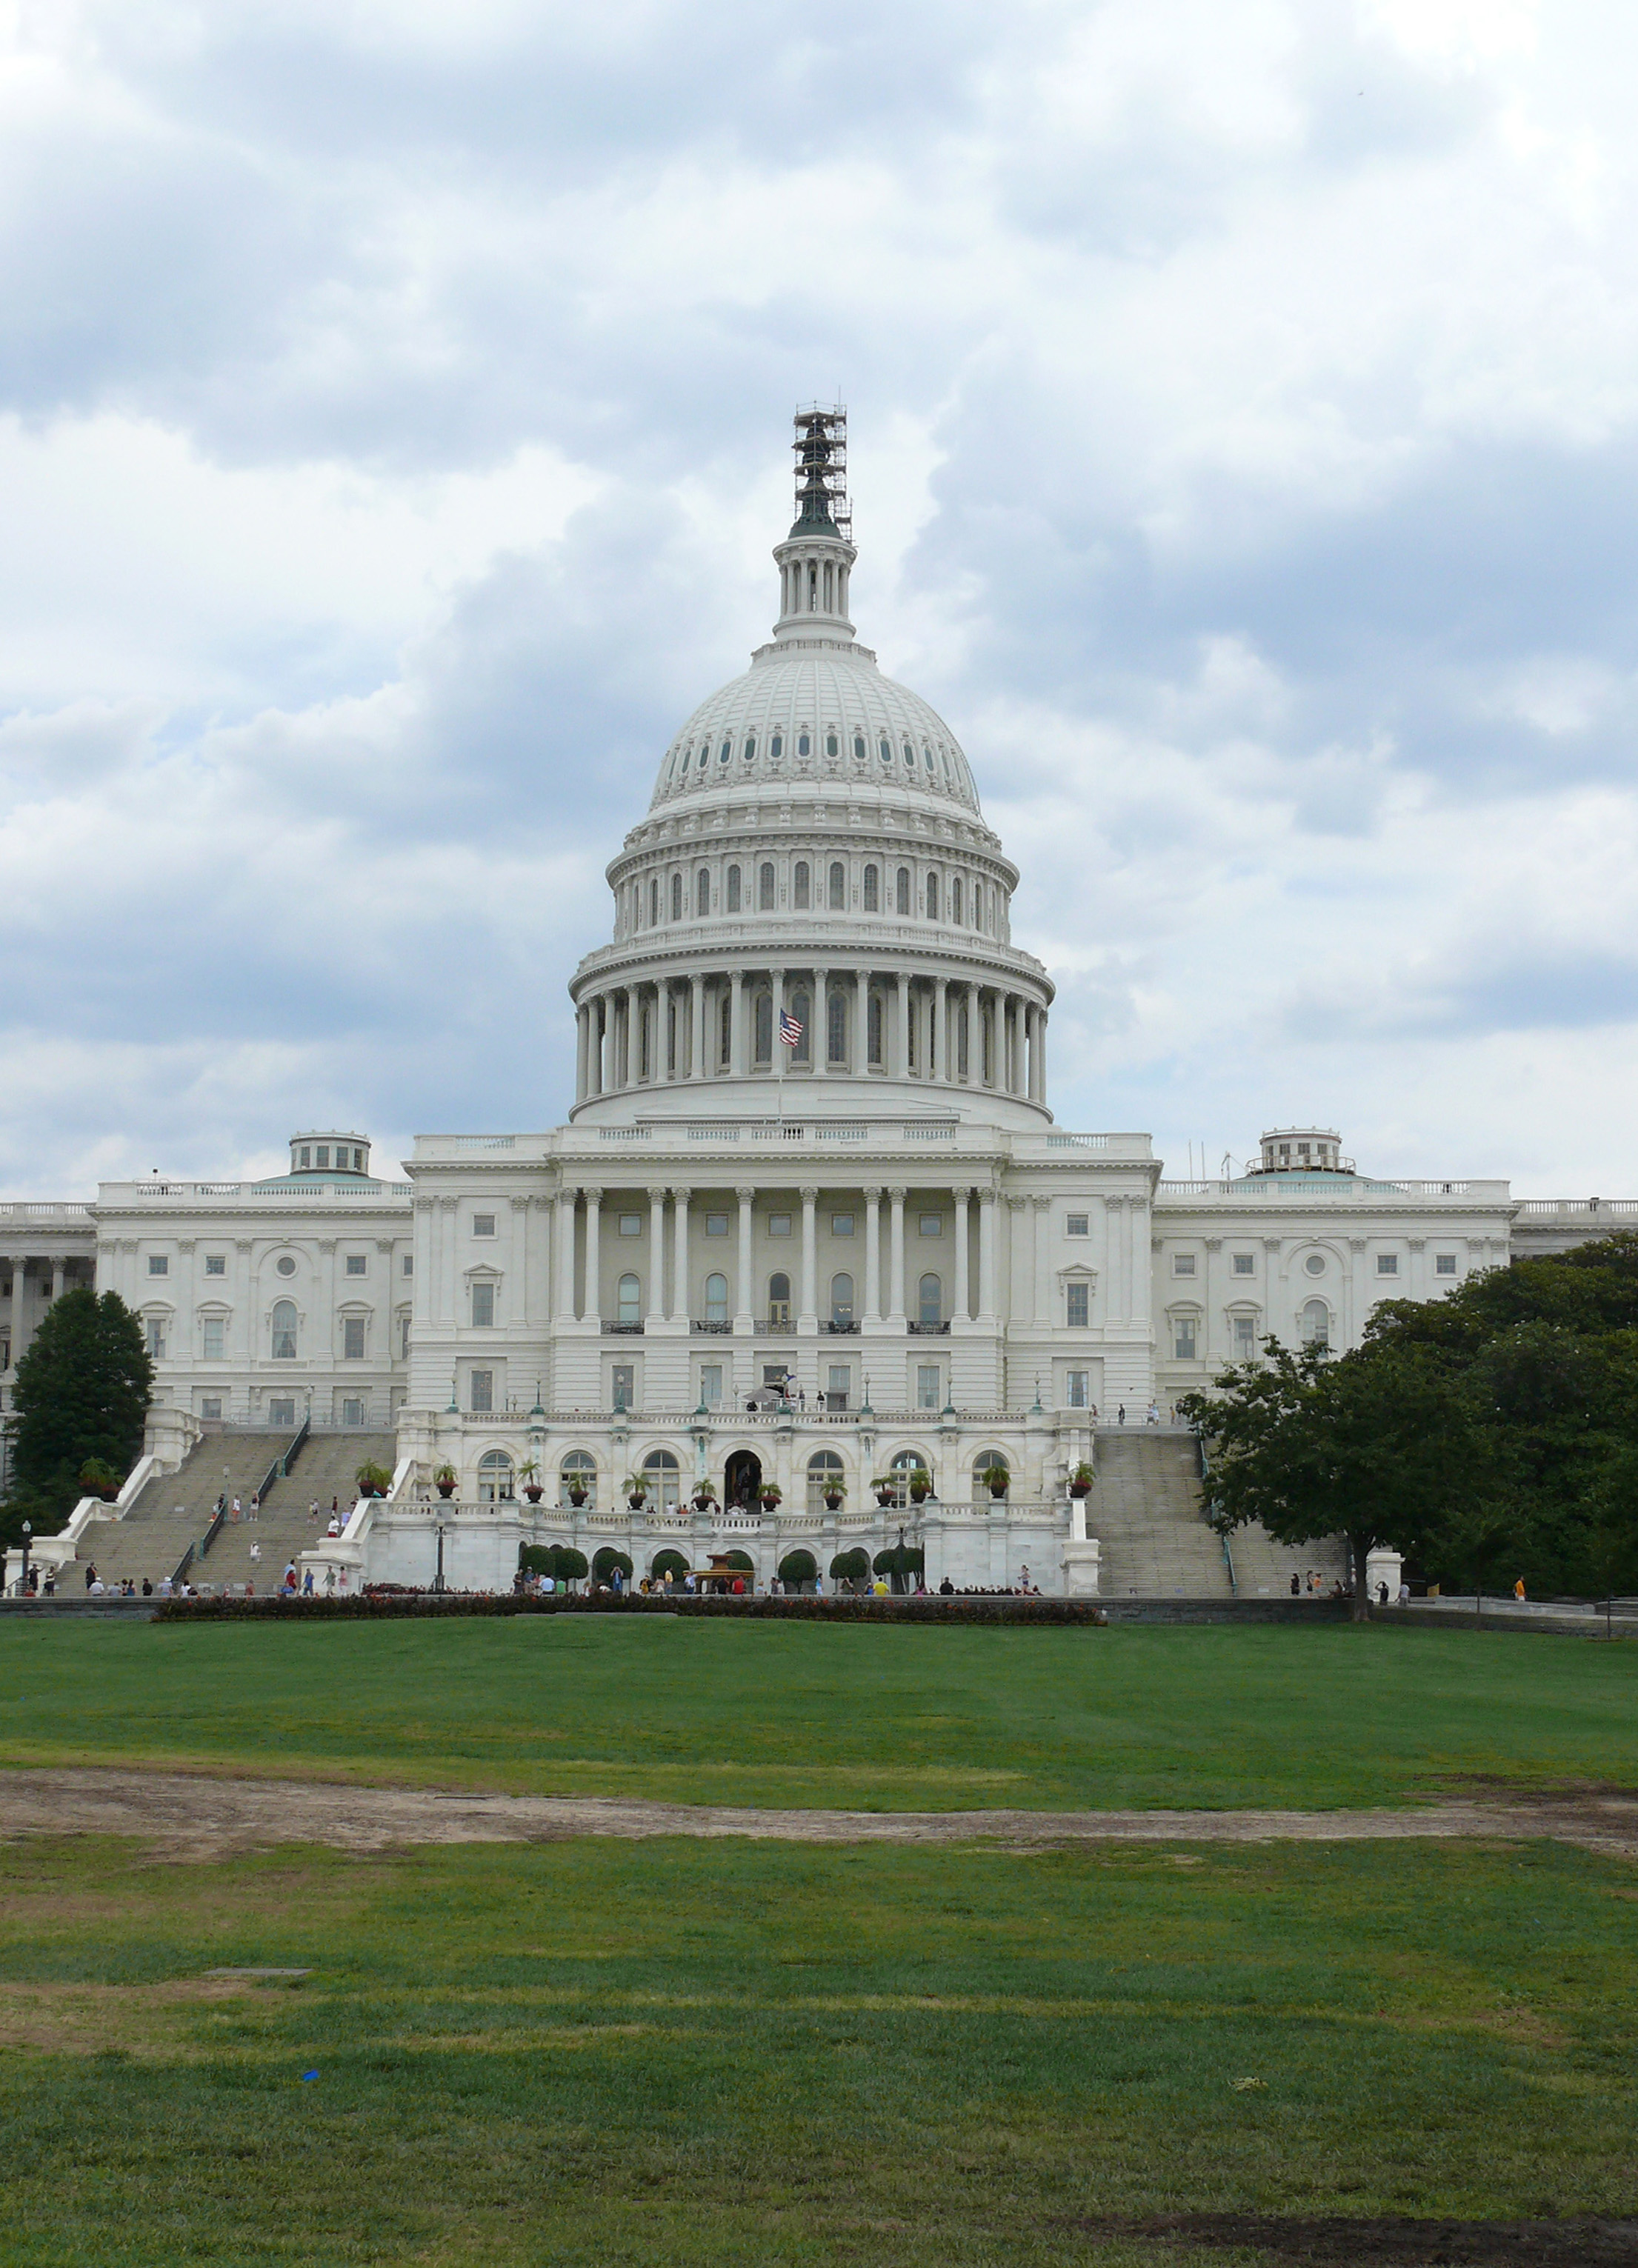 The US Capitol Building in Washington